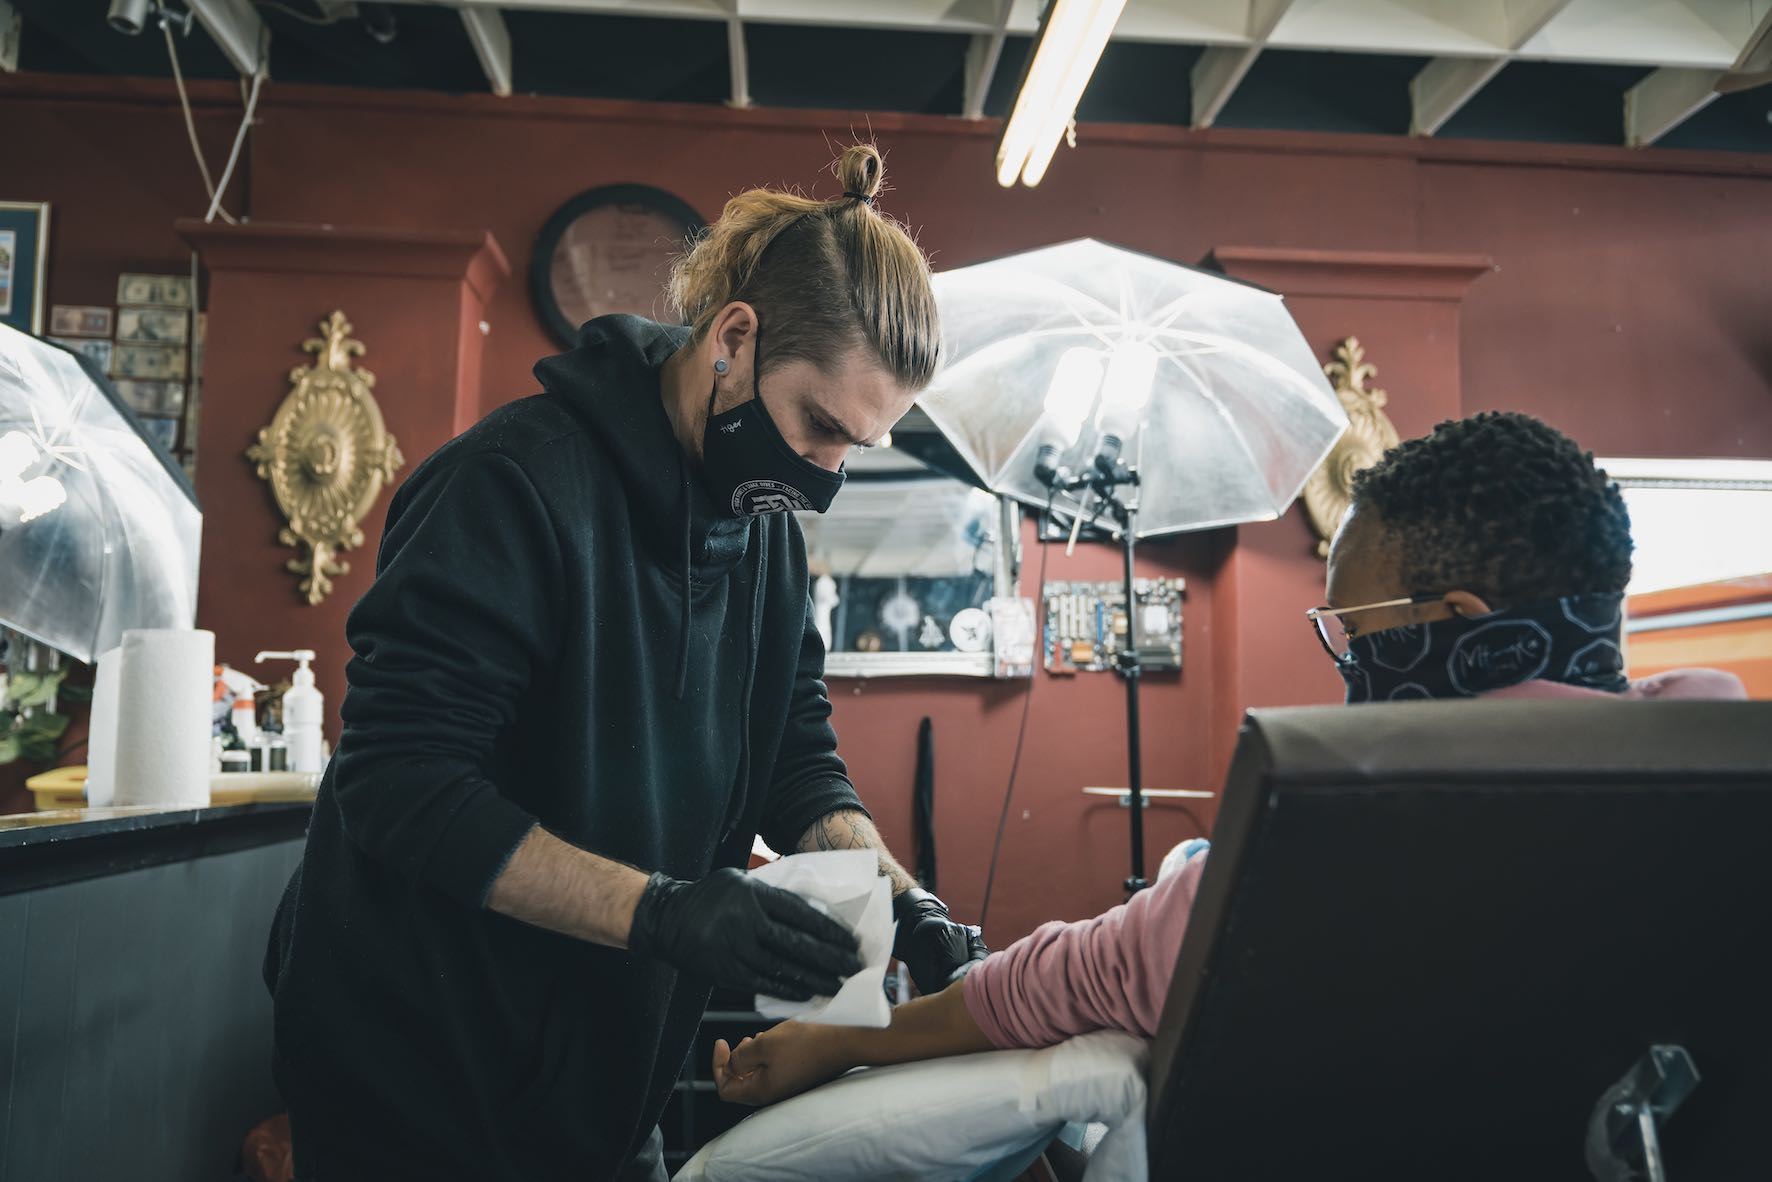 Meet Nathan Ferreira in our SA tattoo artists feature